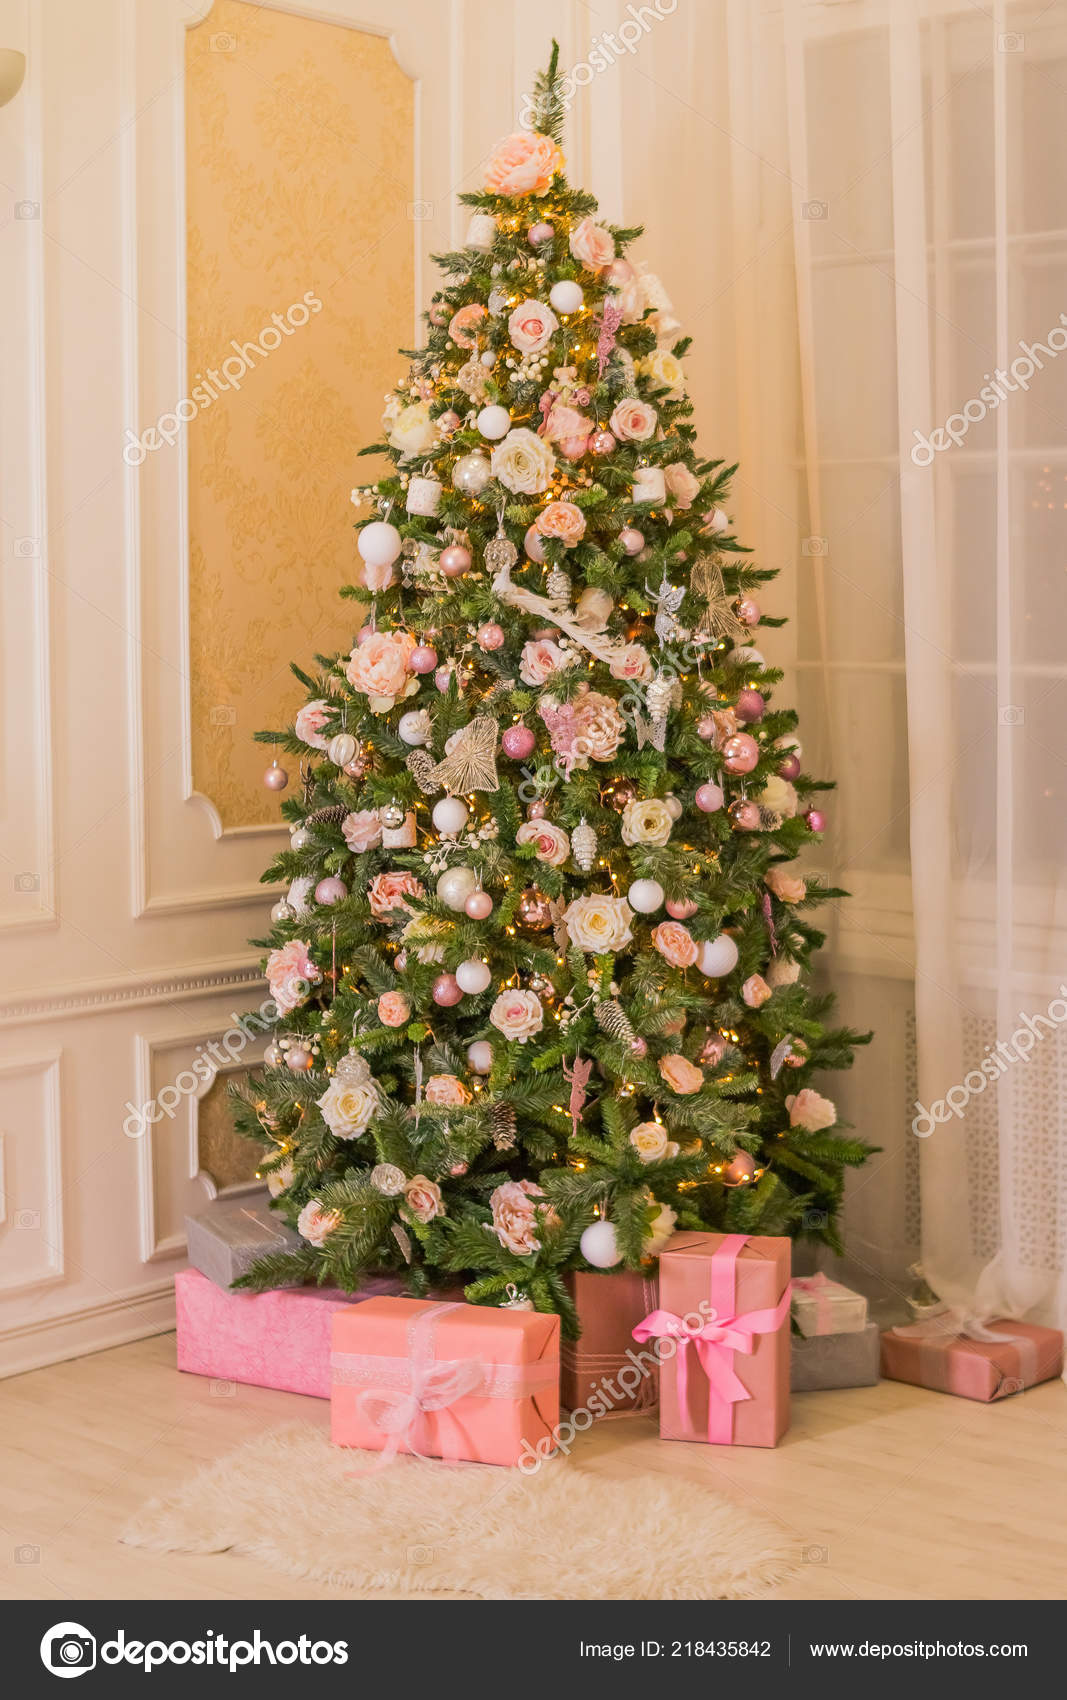 Elegant Christmas Trees Decorated With Ribbon Pastel Christmas Elegant Christmas Tree With Decorations And Gifts On Elegant Hardwood Floor Pink Christmas Gift Boxes With Pink And Silver Ribbon Next To Decorated Christmas